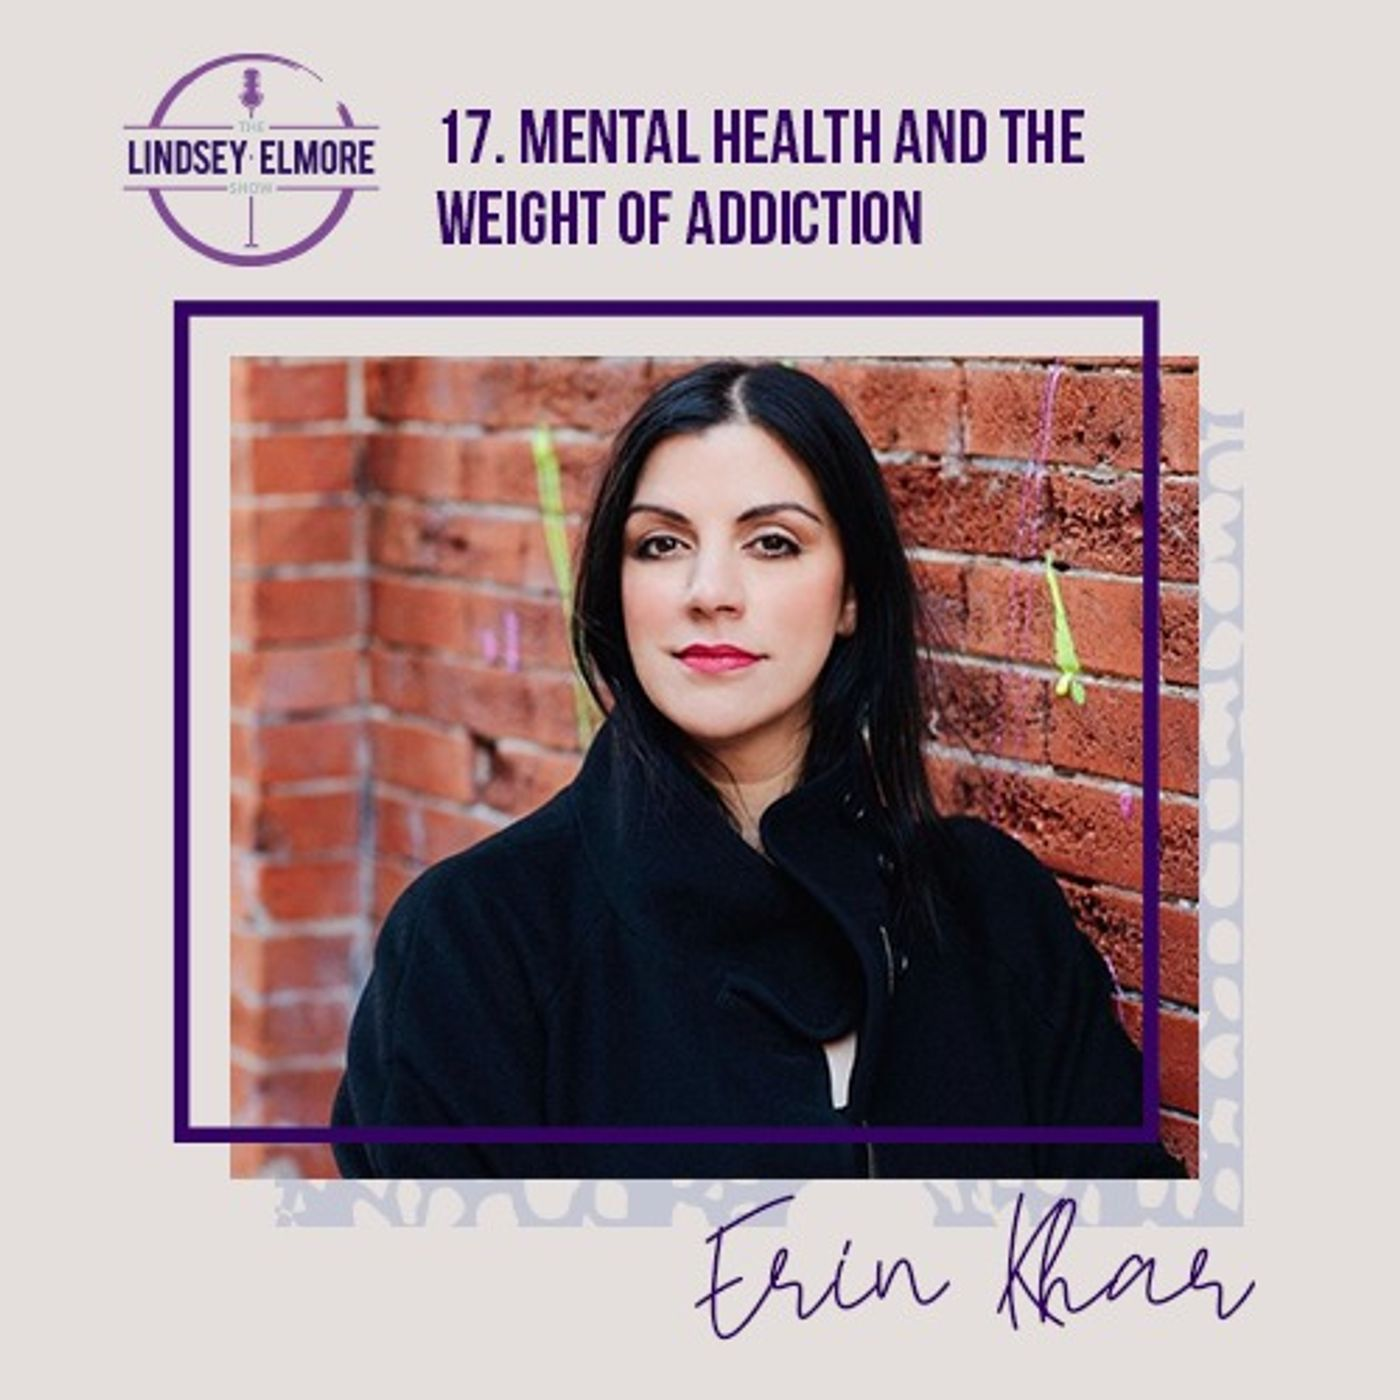 Mental health and the weight of addiction. An interview with Erin Khar.